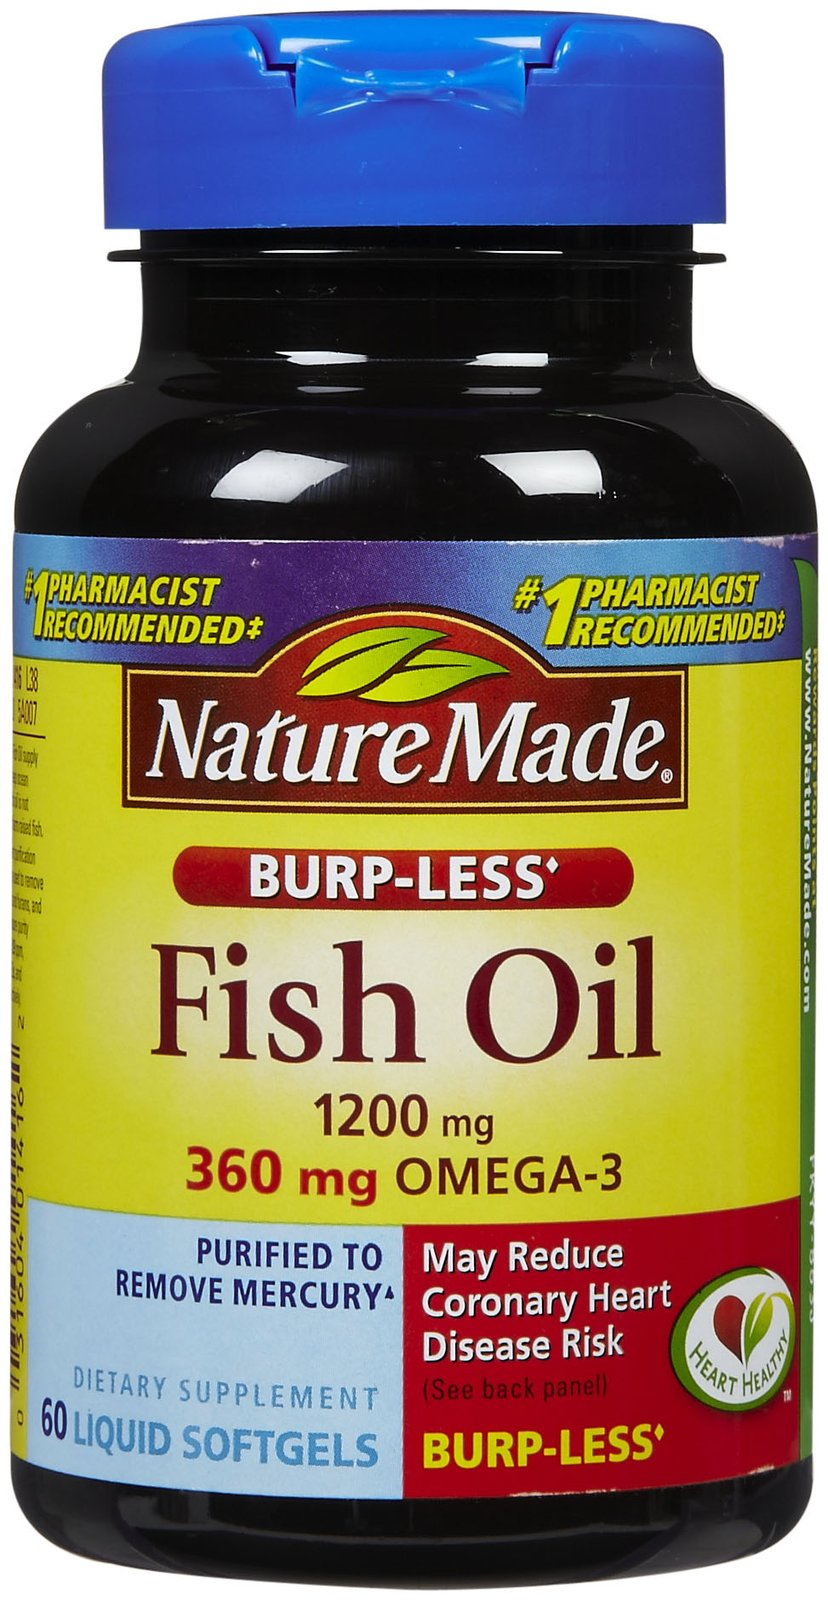 Top 10 best fish oil supplements currently for Recommended daily dose of fish oil